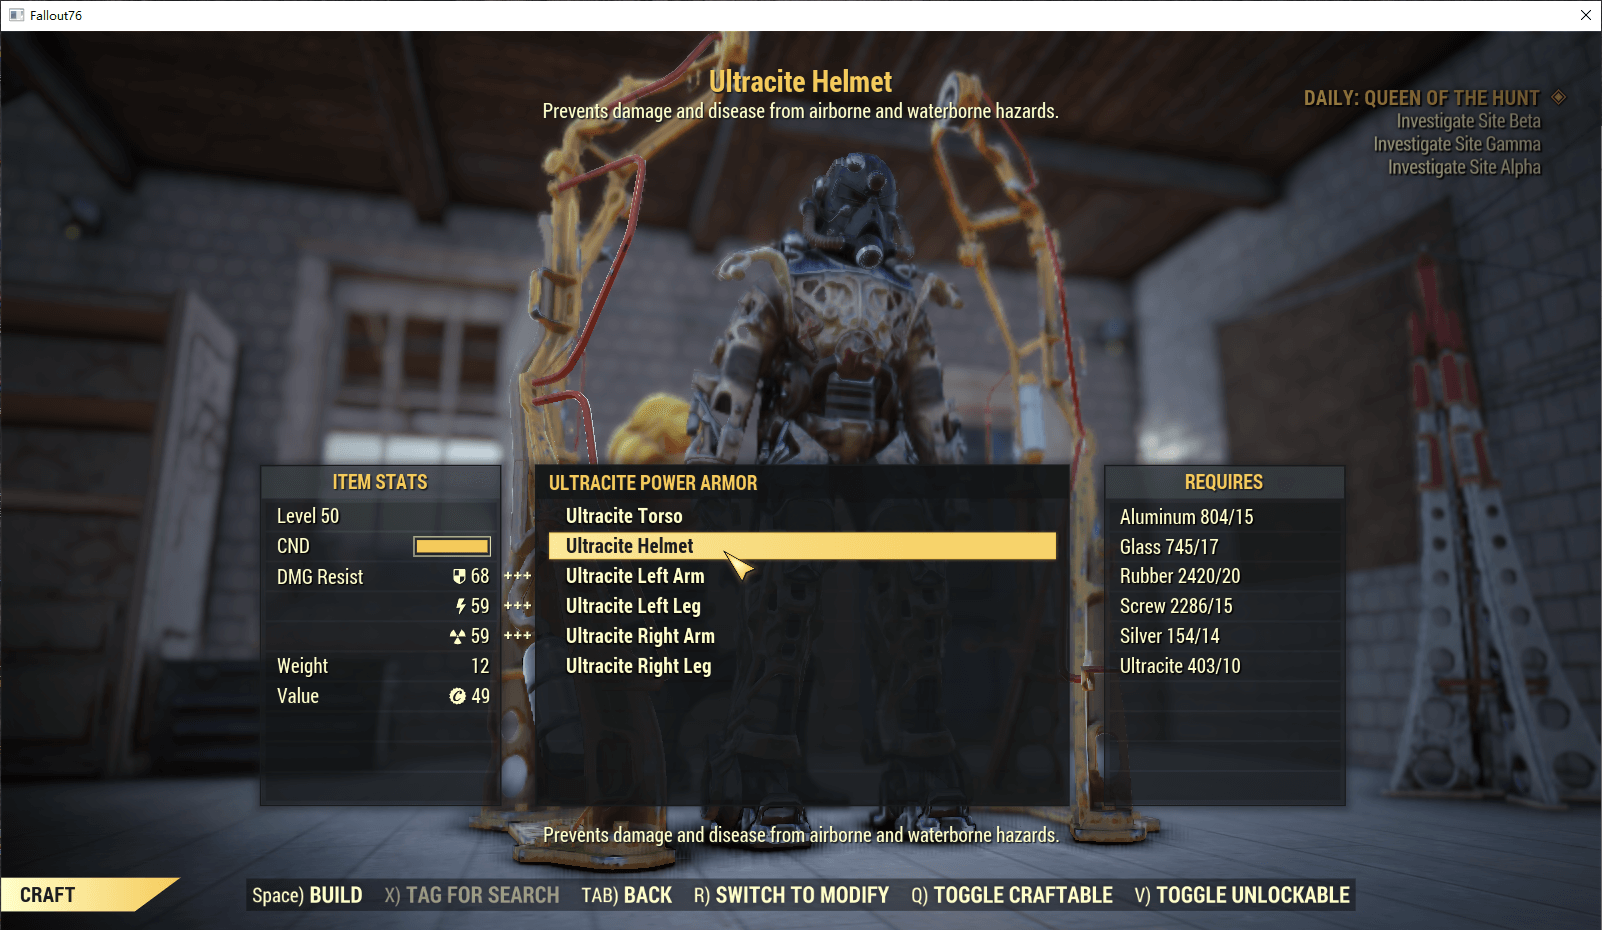 Full set Ultracite Power Armor(6/6 pieces)